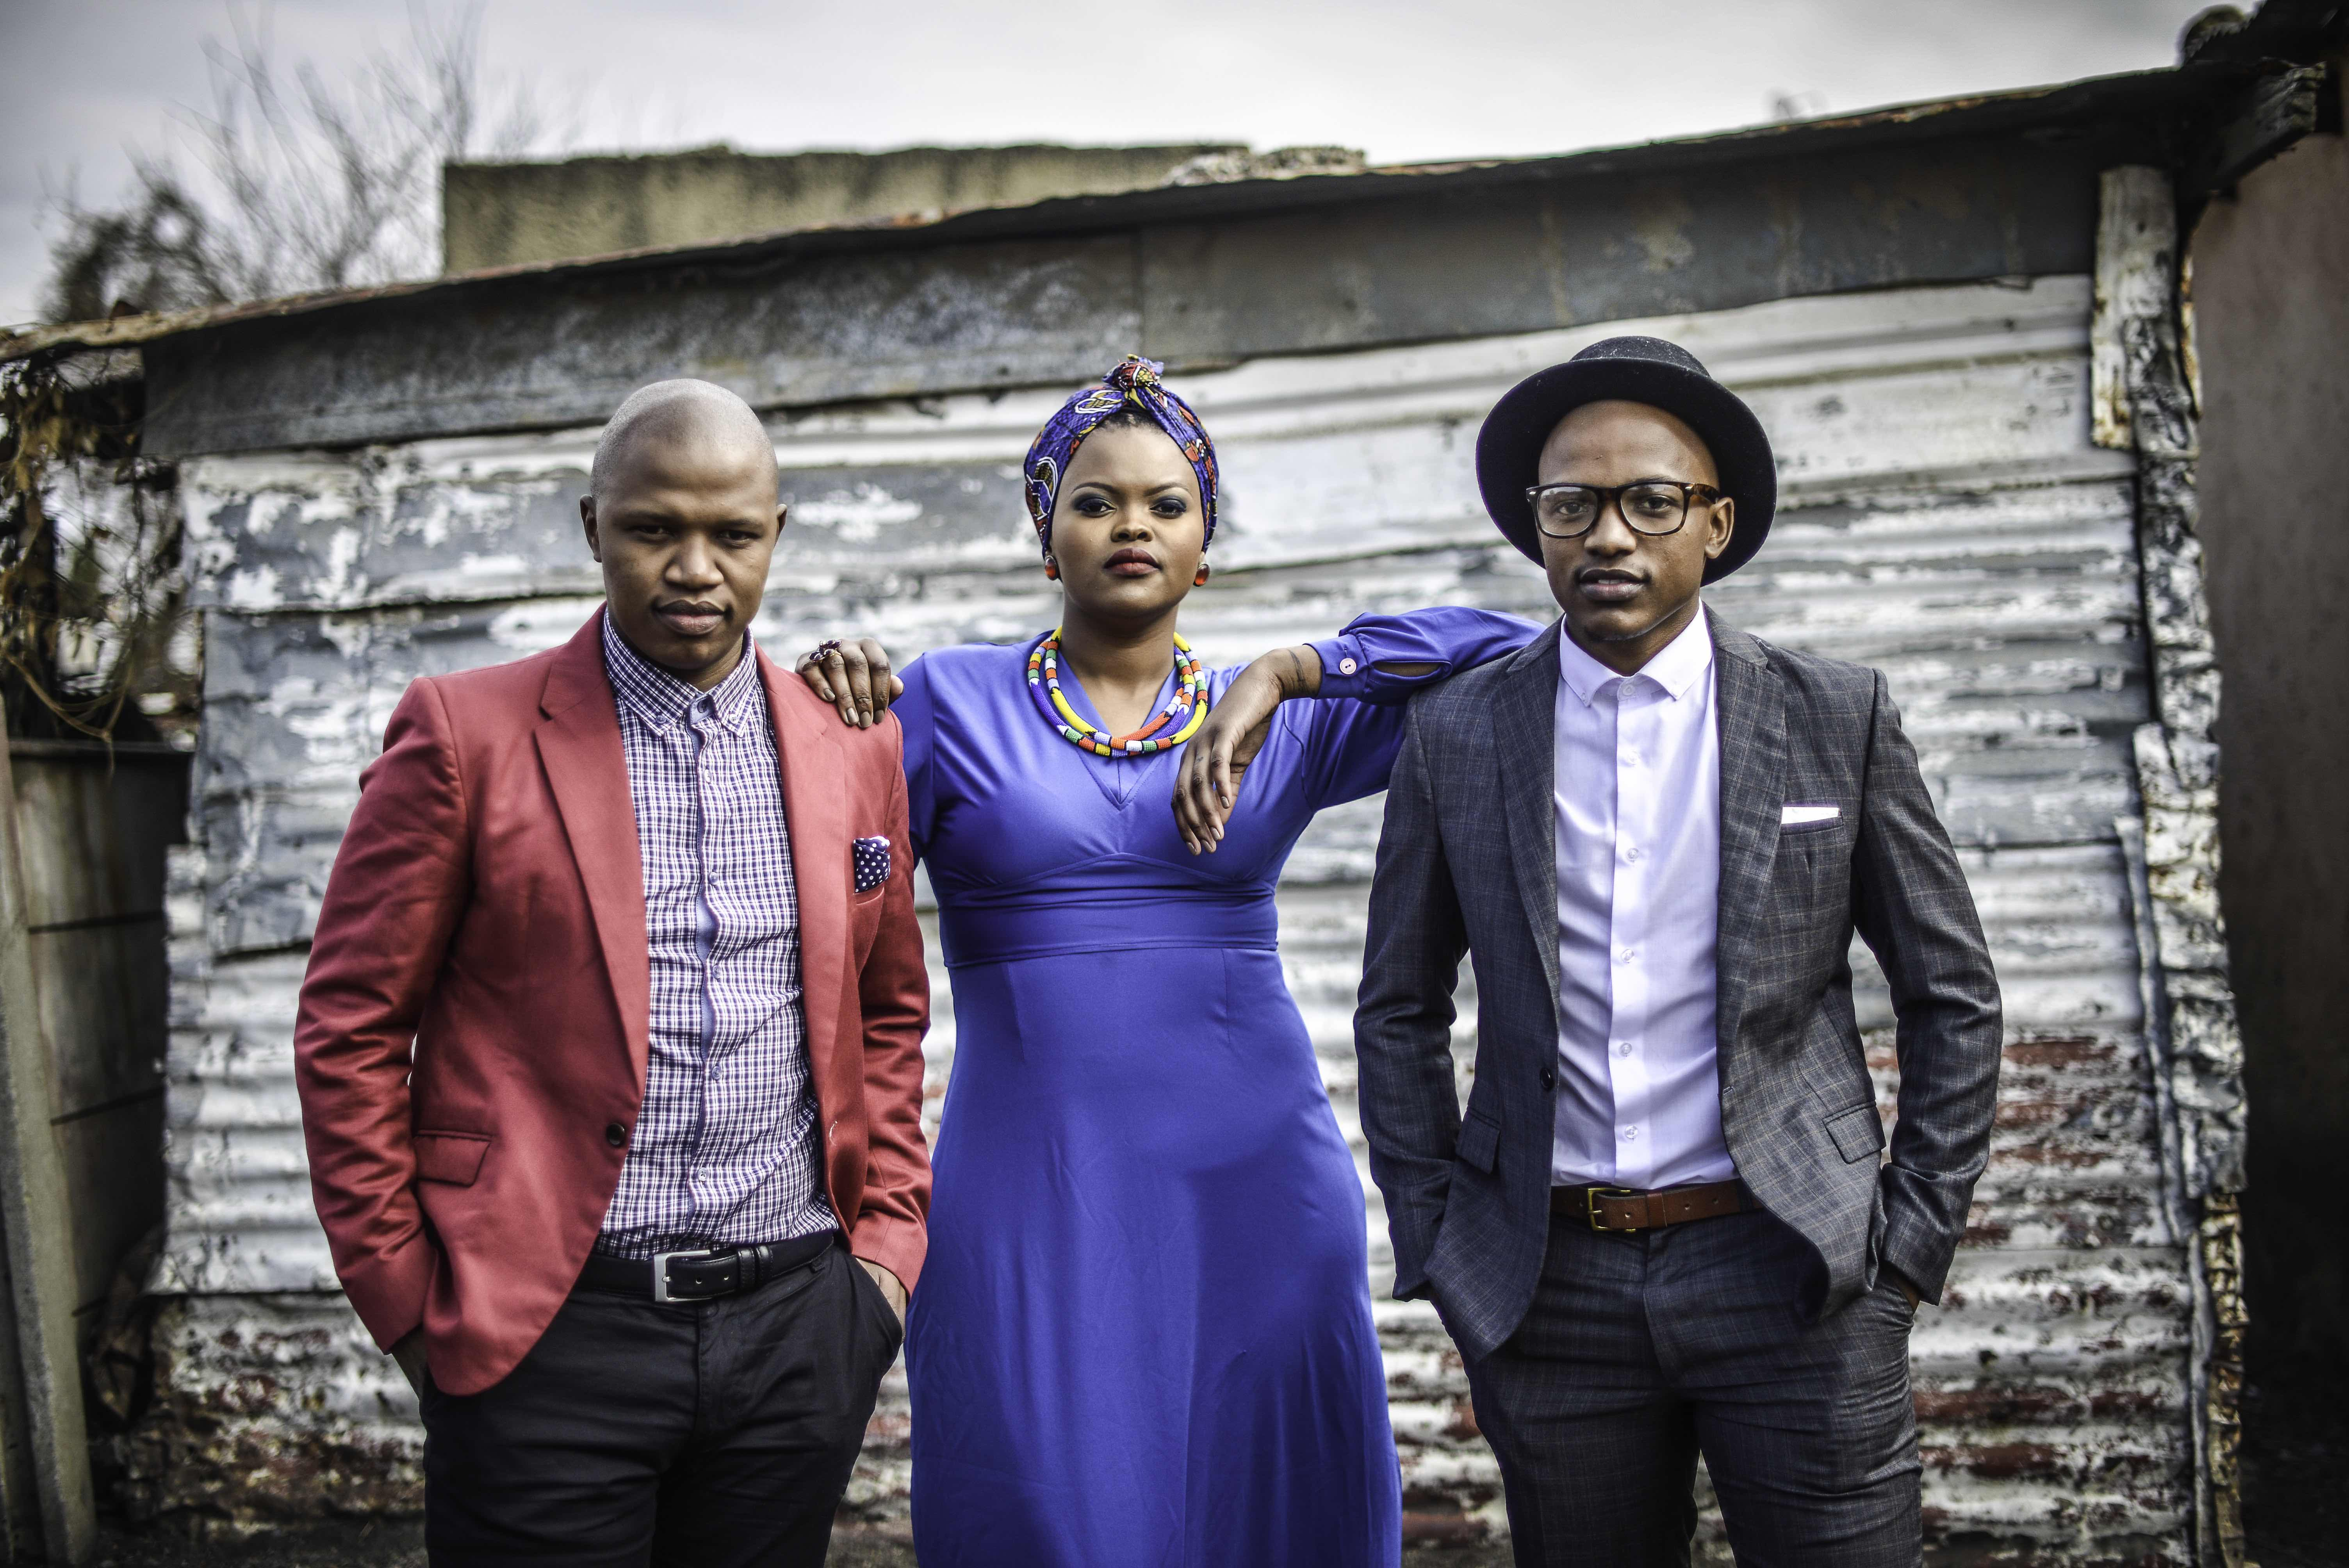 The soil is now in search for new female vocalist yomzansi for From the soil